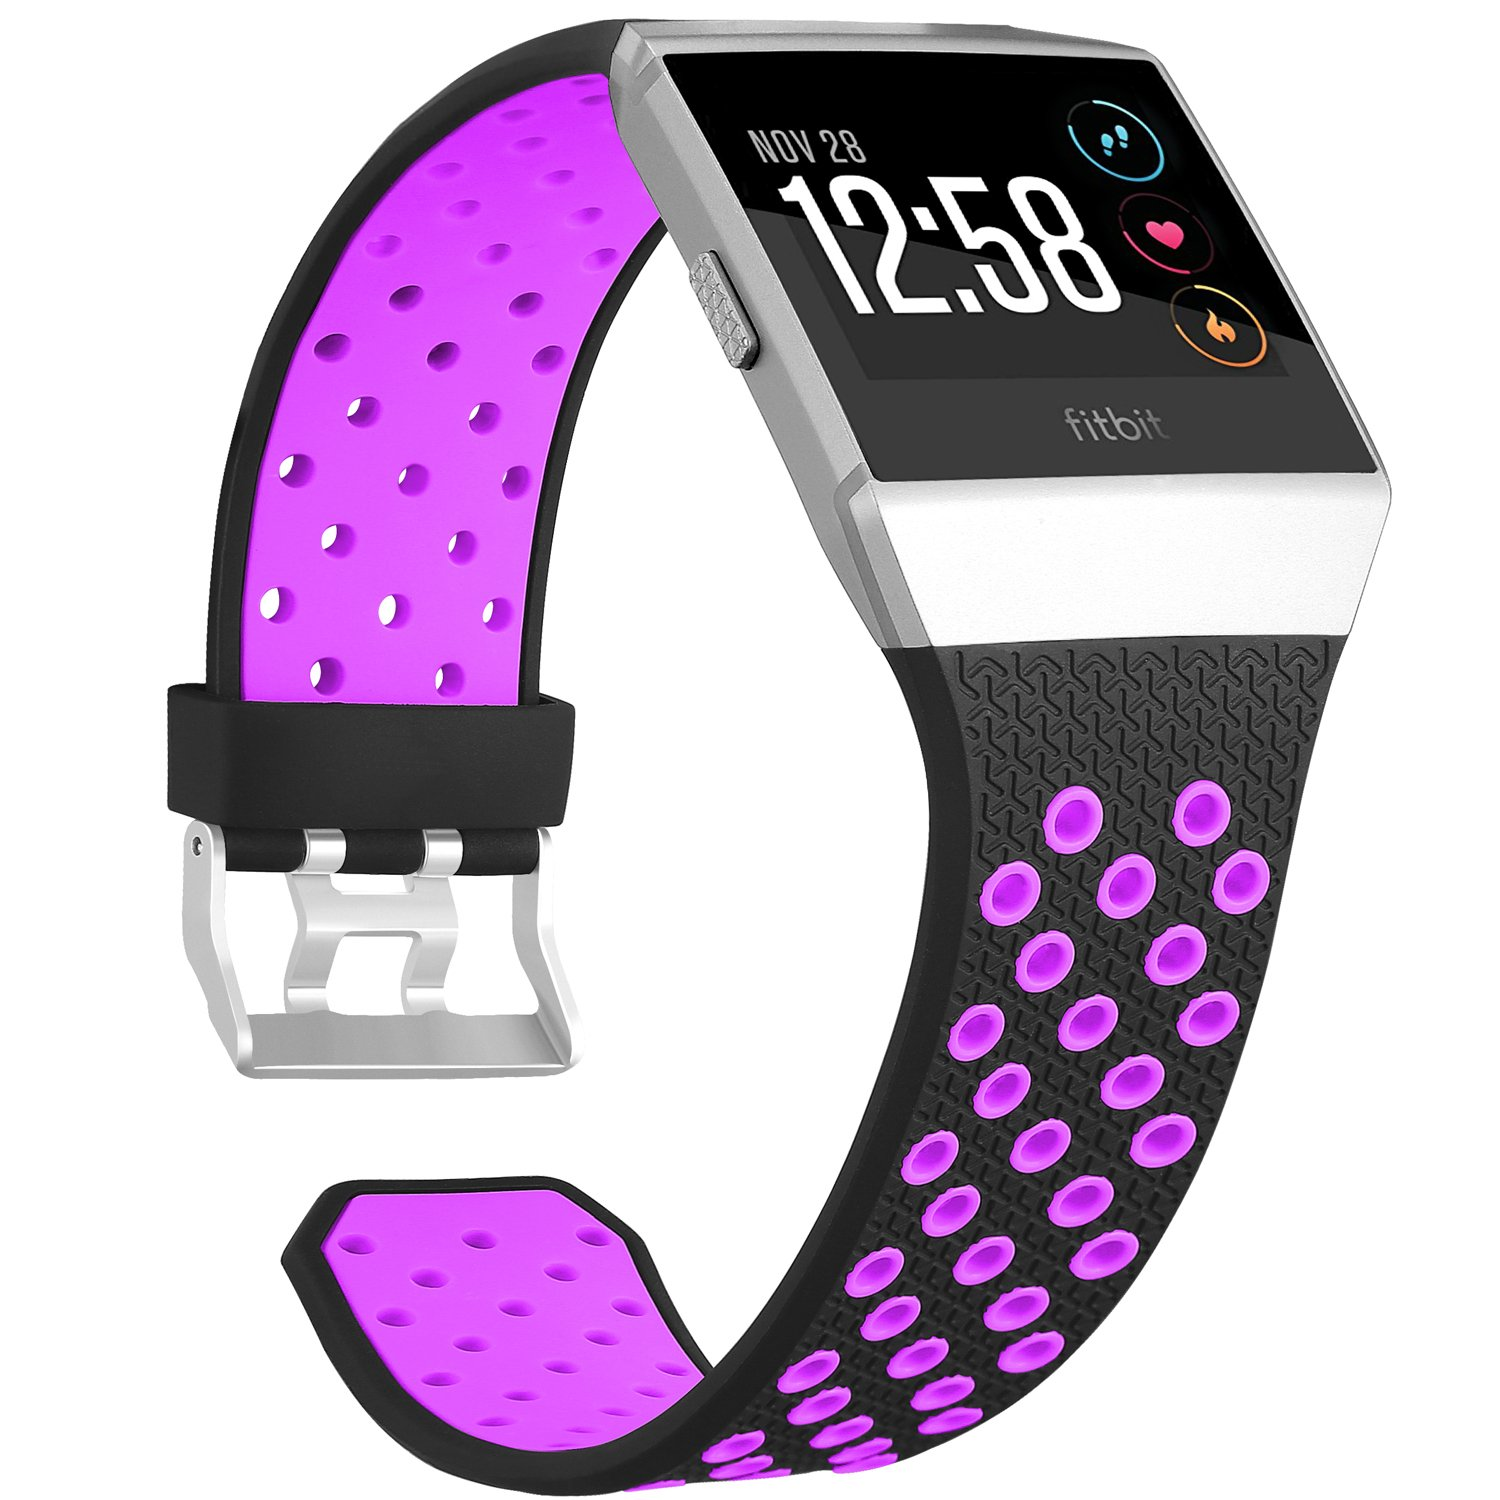 For Fitbit Ionic帯、Skyletソフト通気性アクセサリーWristbands for Fitbit Ionicブレスレットwith Buckle (トラッカーなし) 6.3-9.3 Inches/160-235mm|Black-Purple Black-Purple 6.3-9.3 Inches/160-235mm B078JD2HHJ